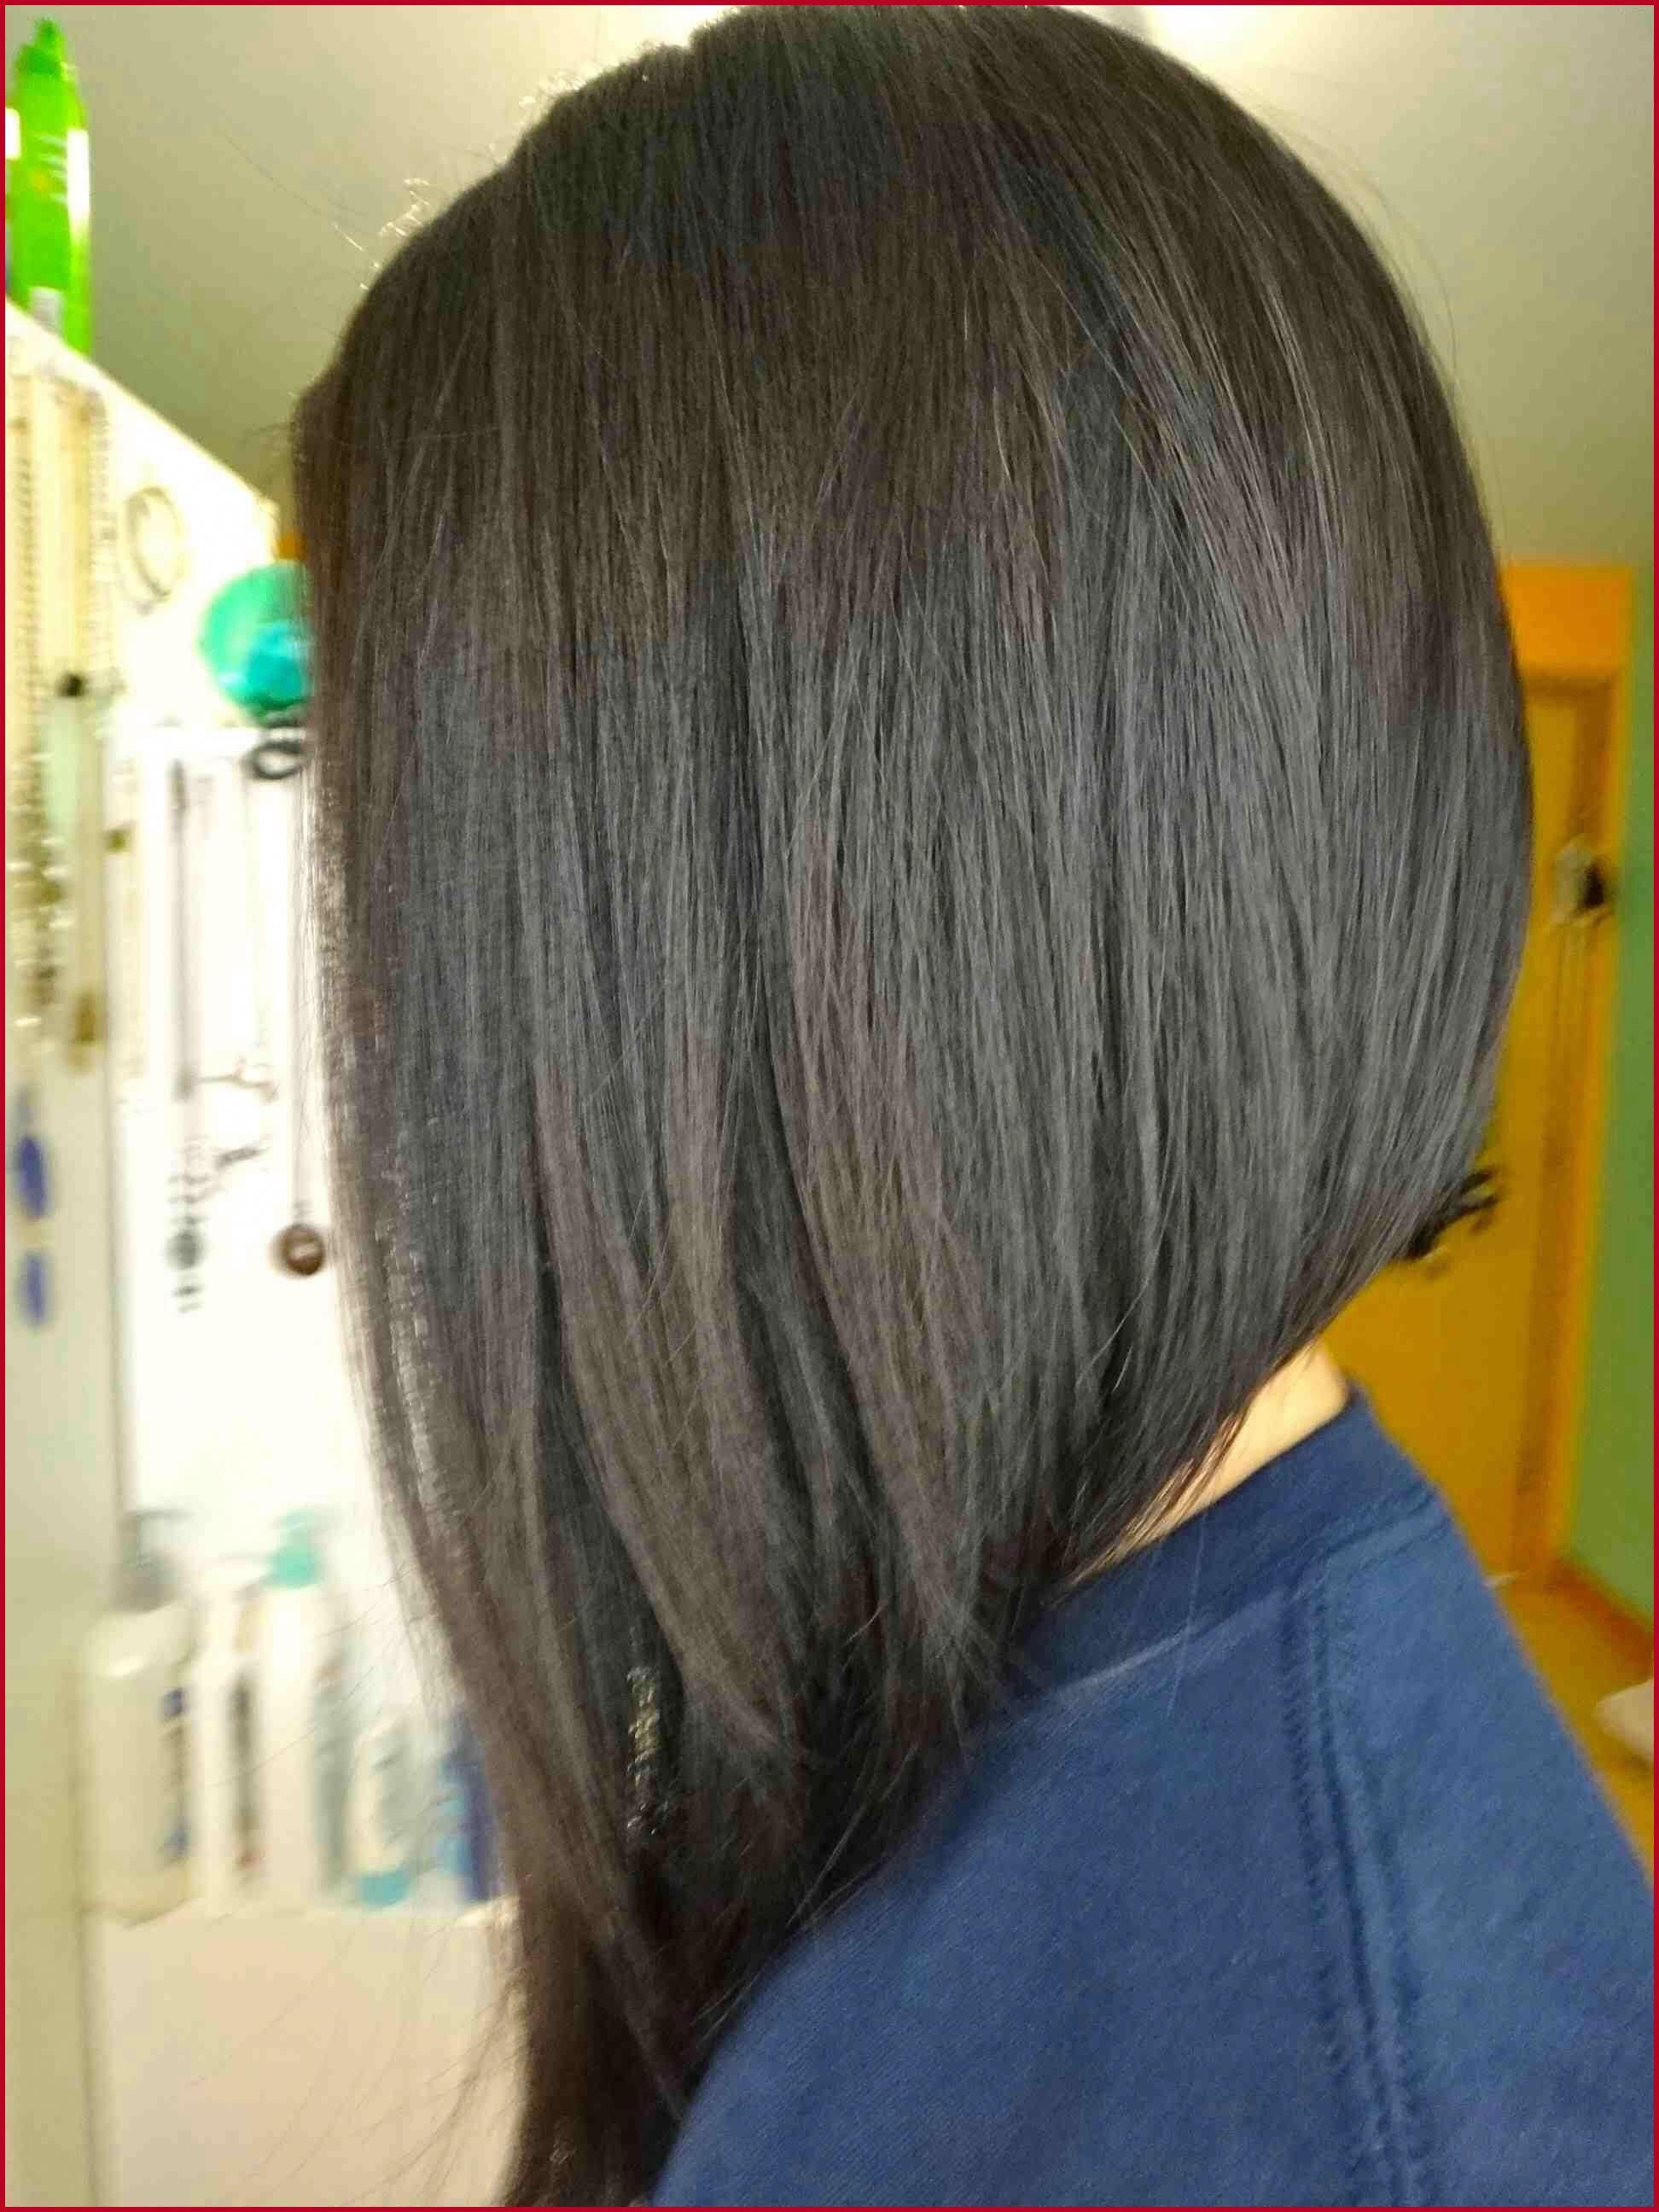 30 Chic Choppy Bob Hairstyles for 30 (With images